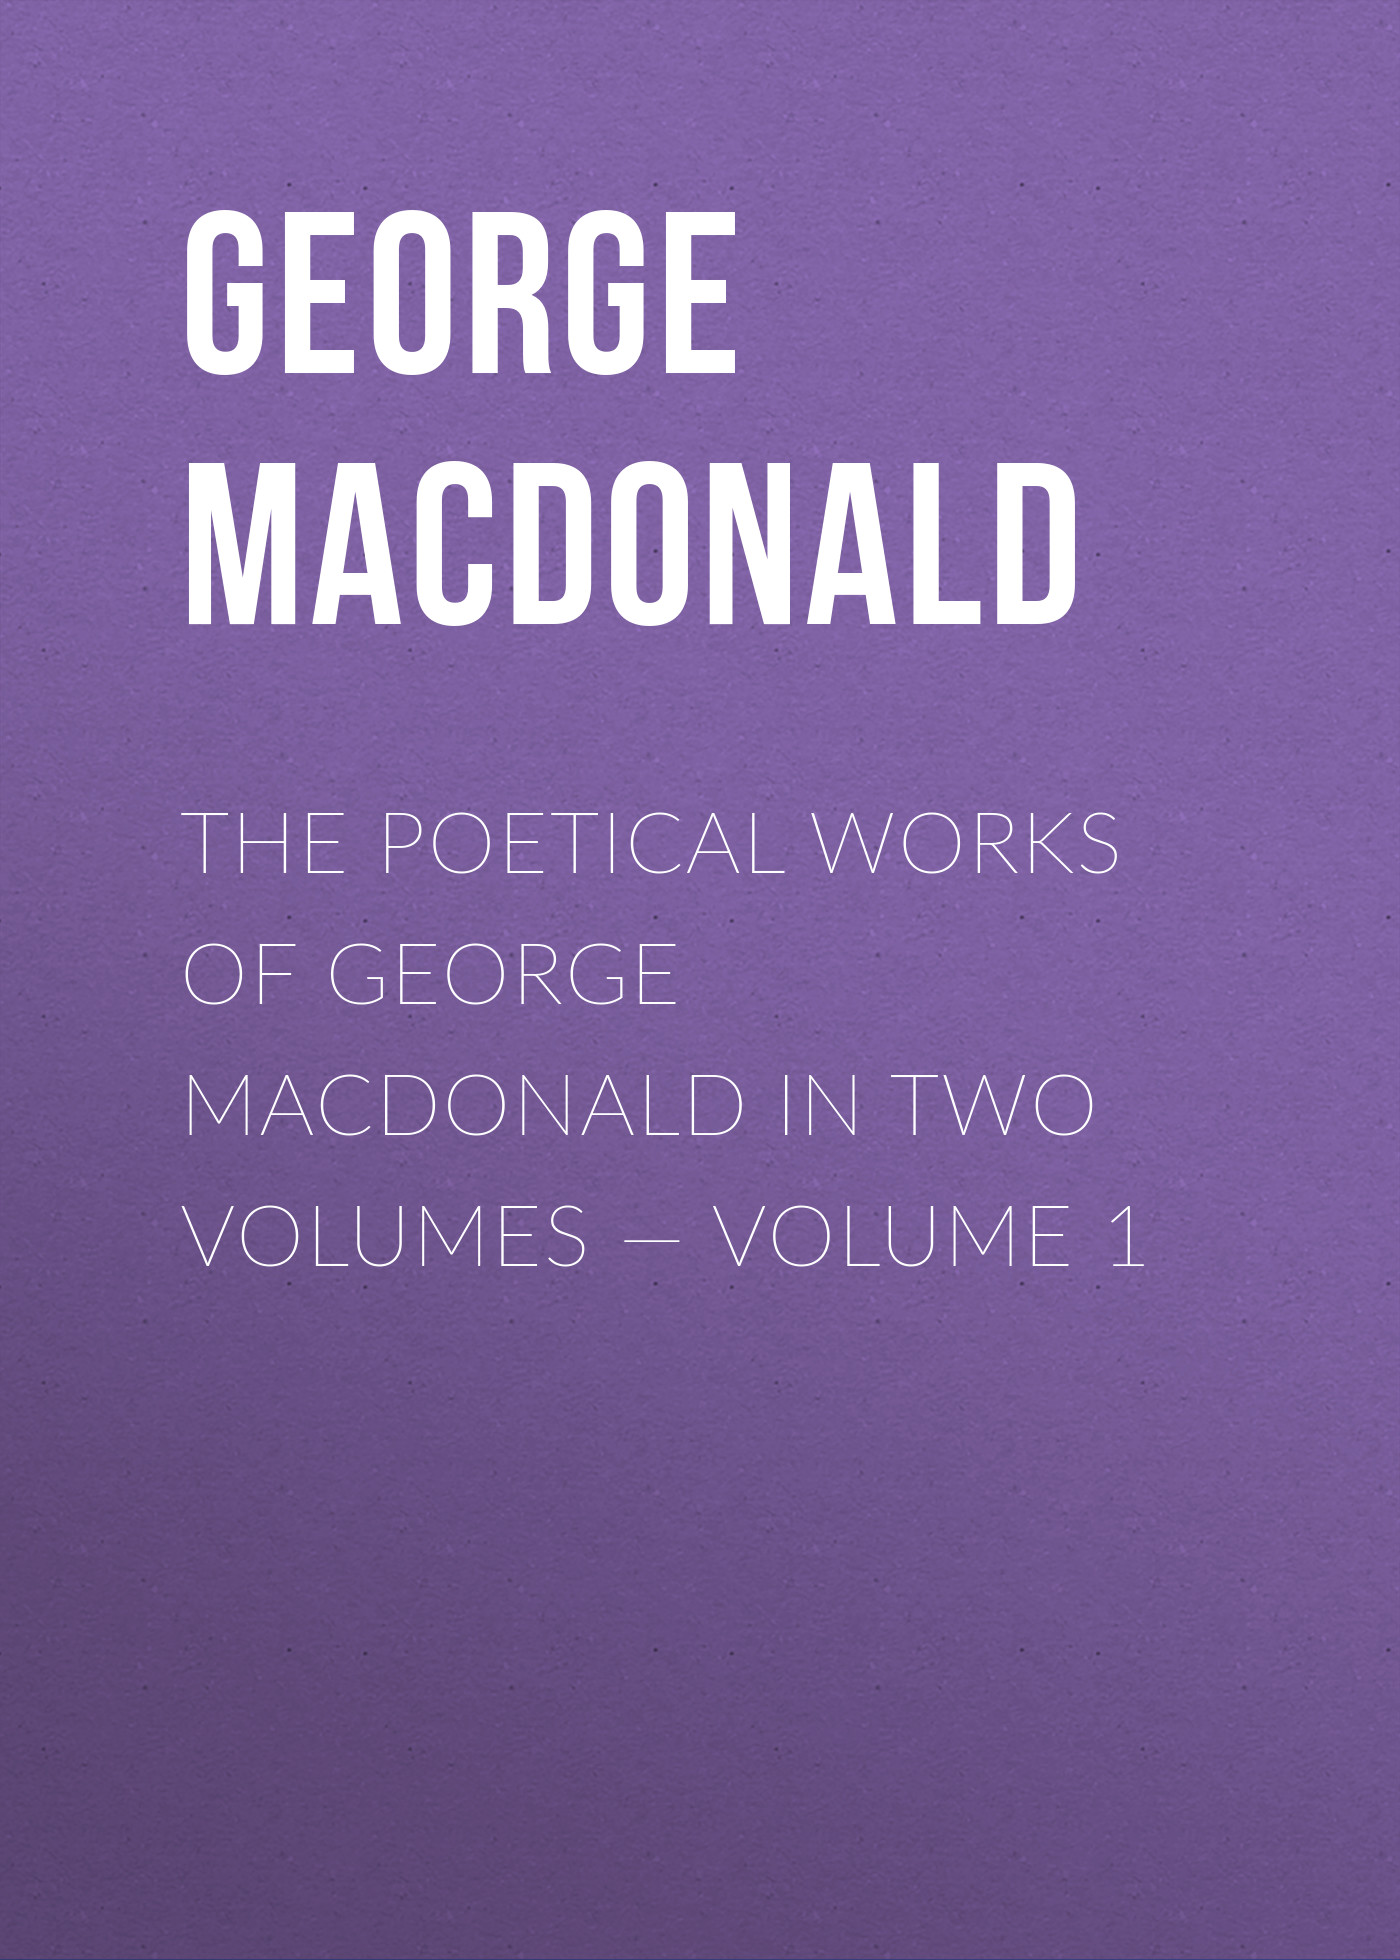 George MacDonald The poetical works of George MacDonald in two volumes — Volume 1 george bull the works of george bull d d lord bishop of st david s 2